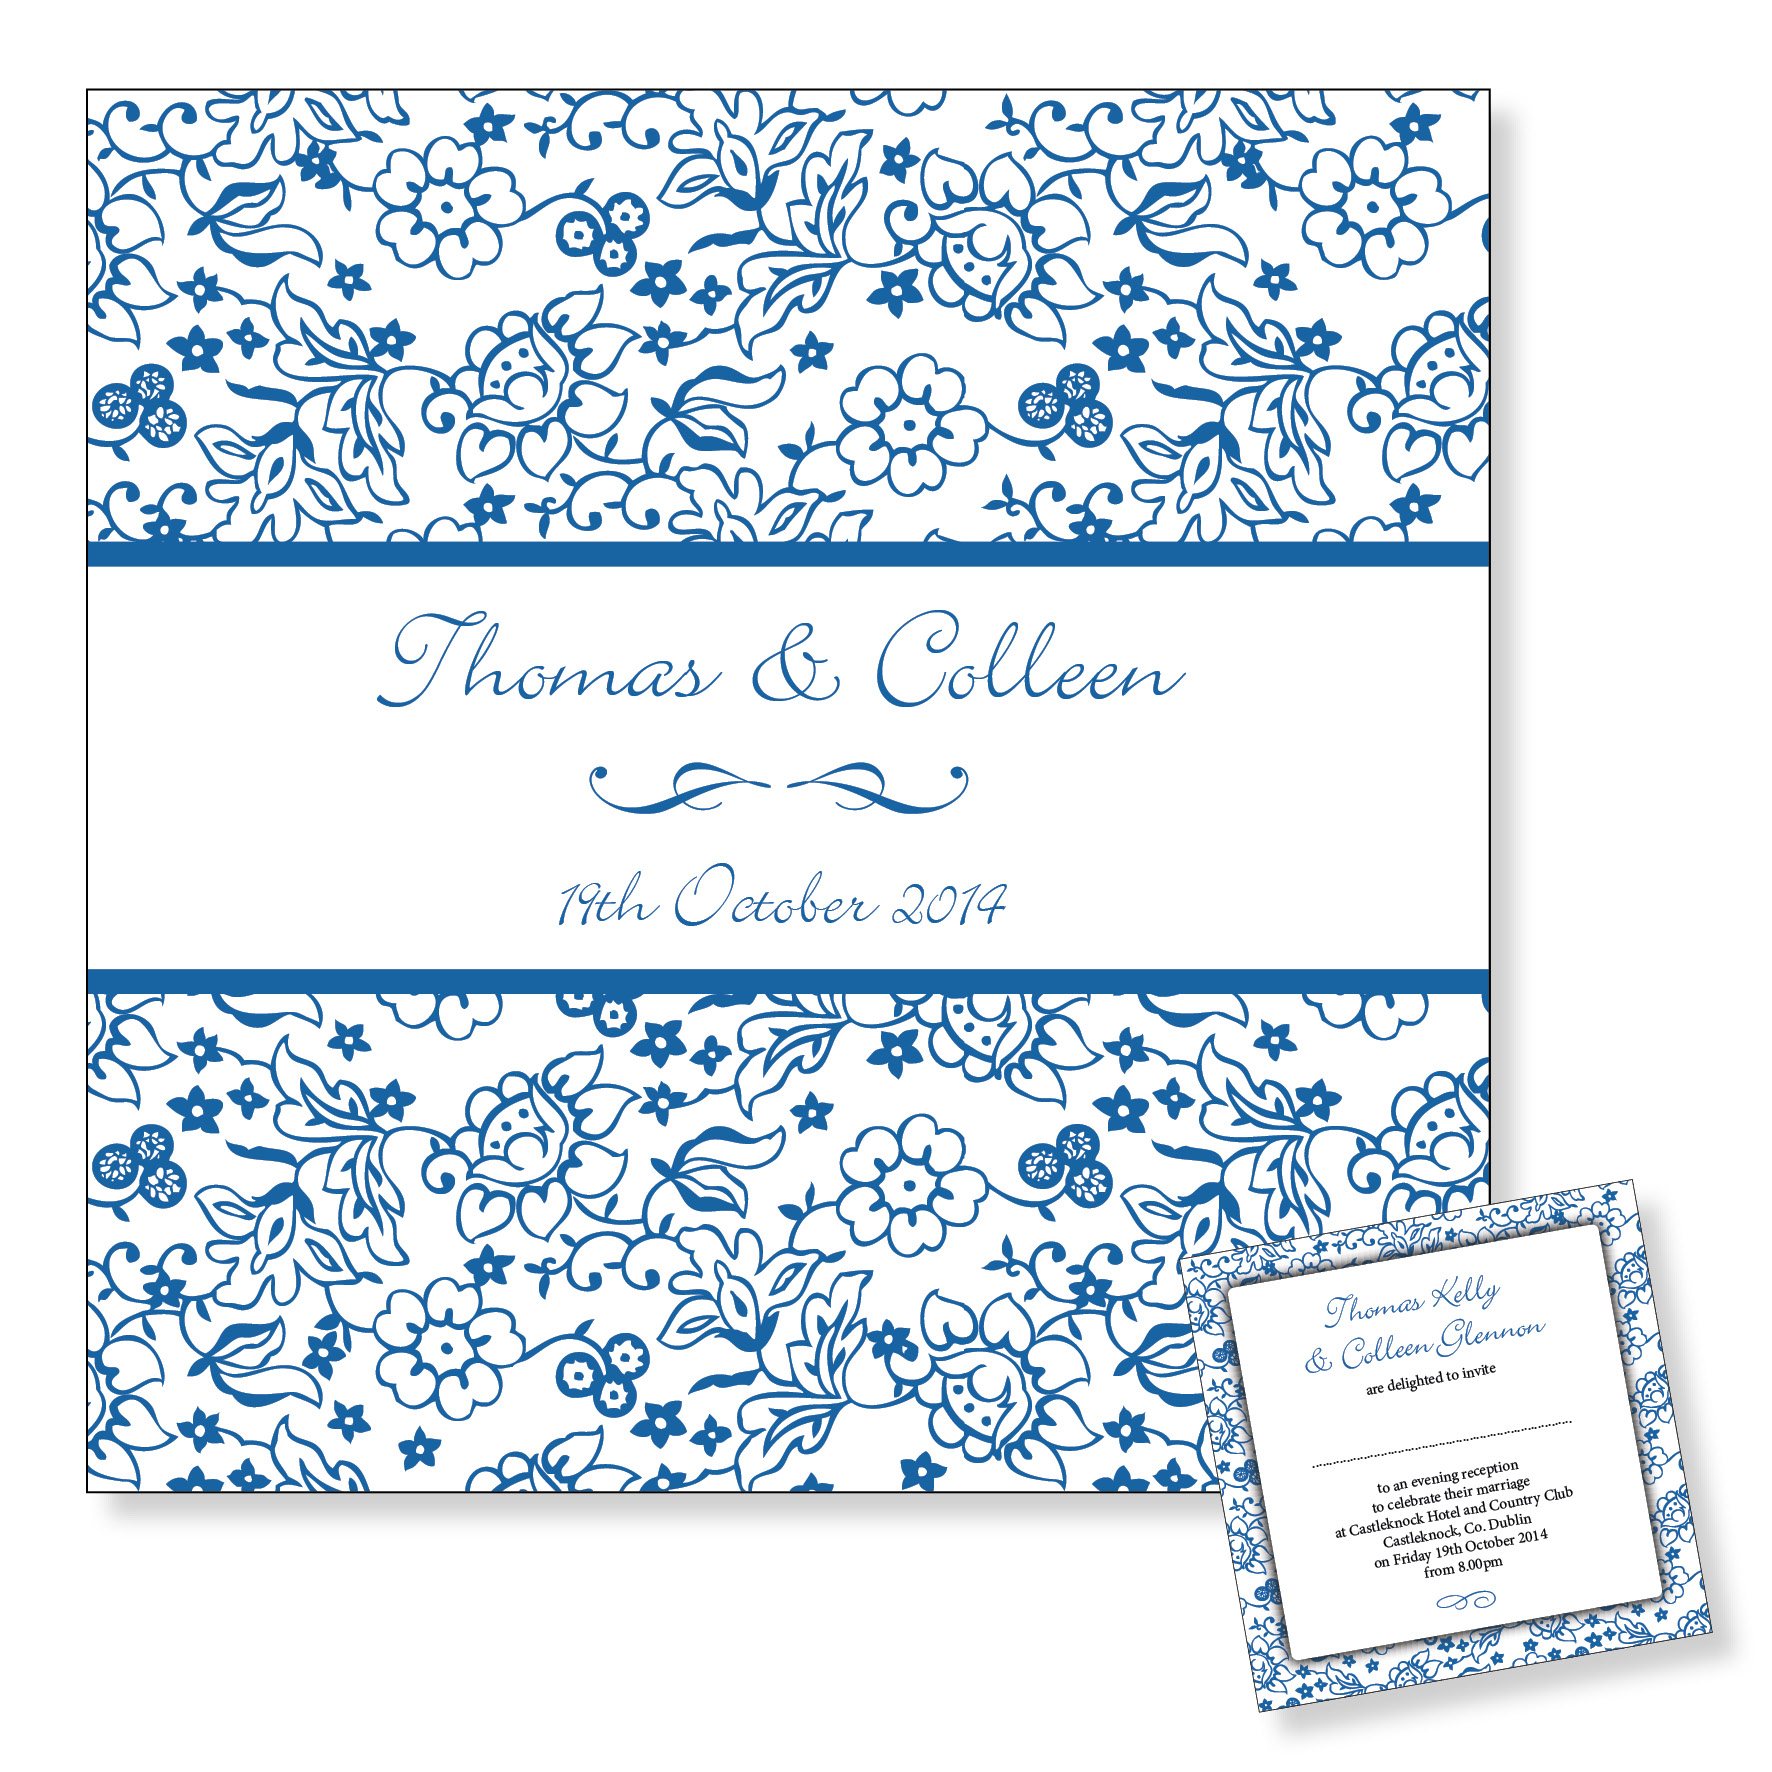 Evening wedding invitation - Blue floral